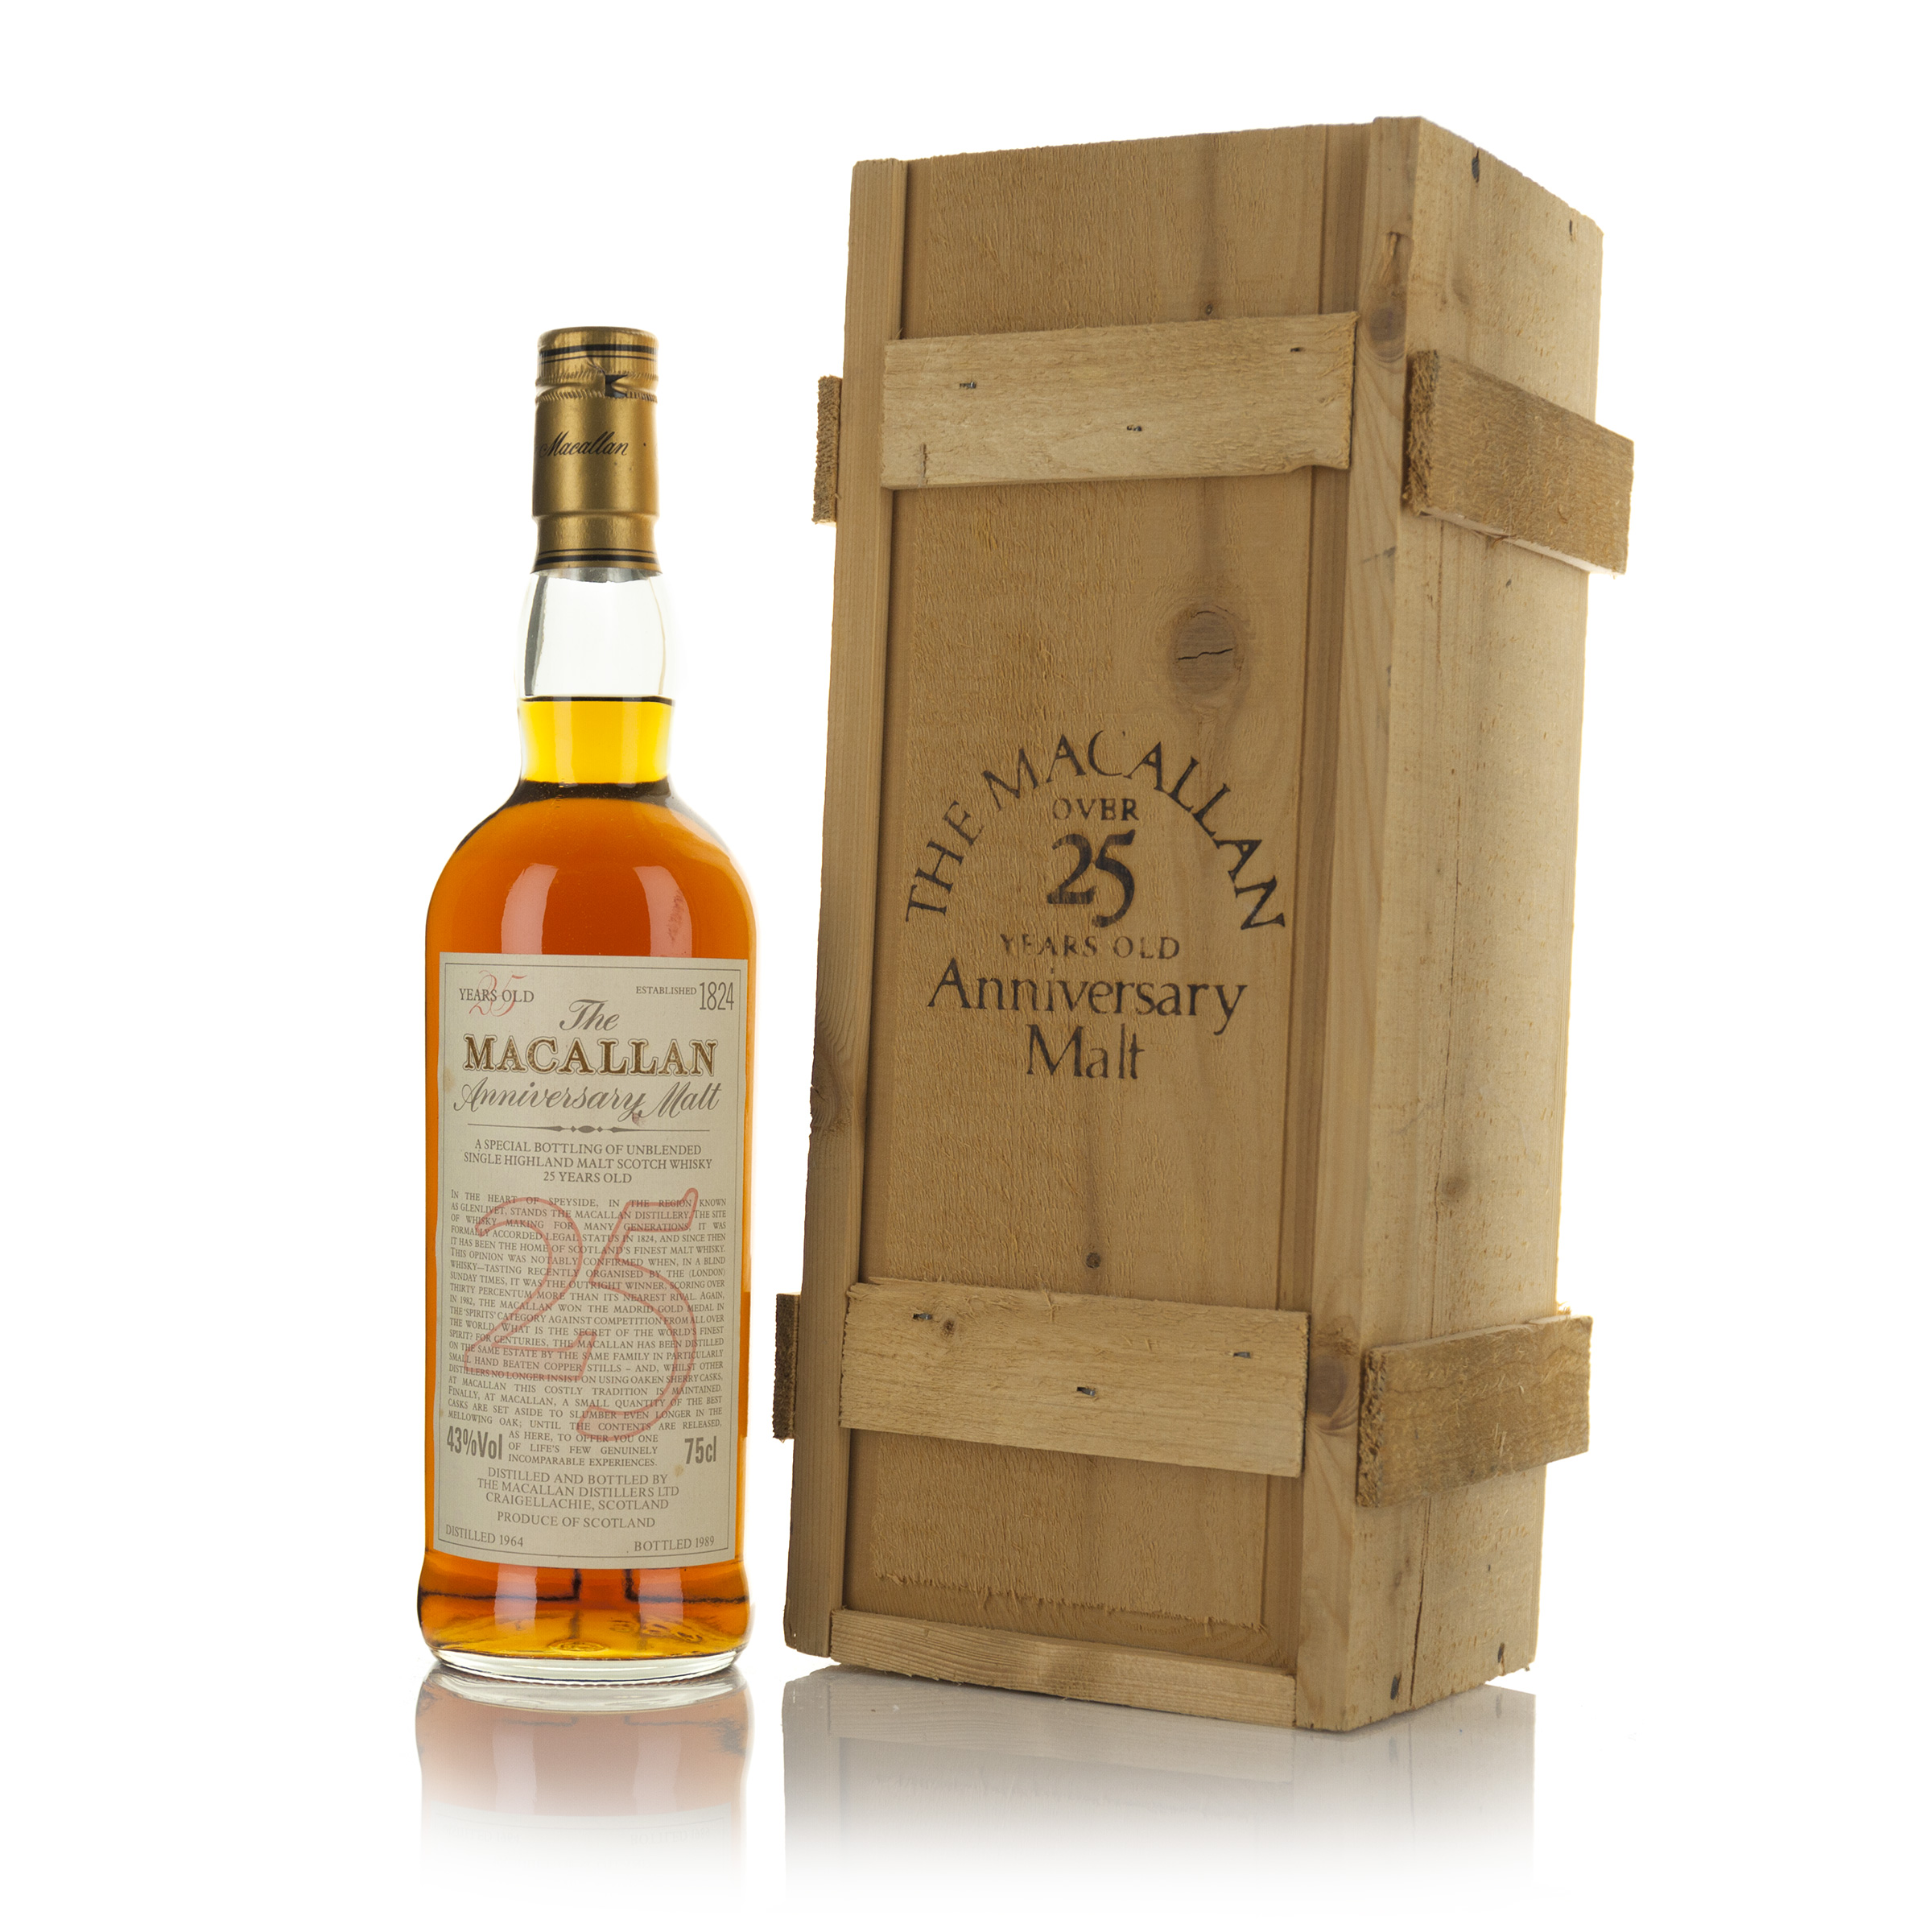 THE MACALLAN 25 ANNIVERSARY SINGLE HIGHLAND MALT SCOTCH WHISKY 25 YEARS (ONE 75 CL)